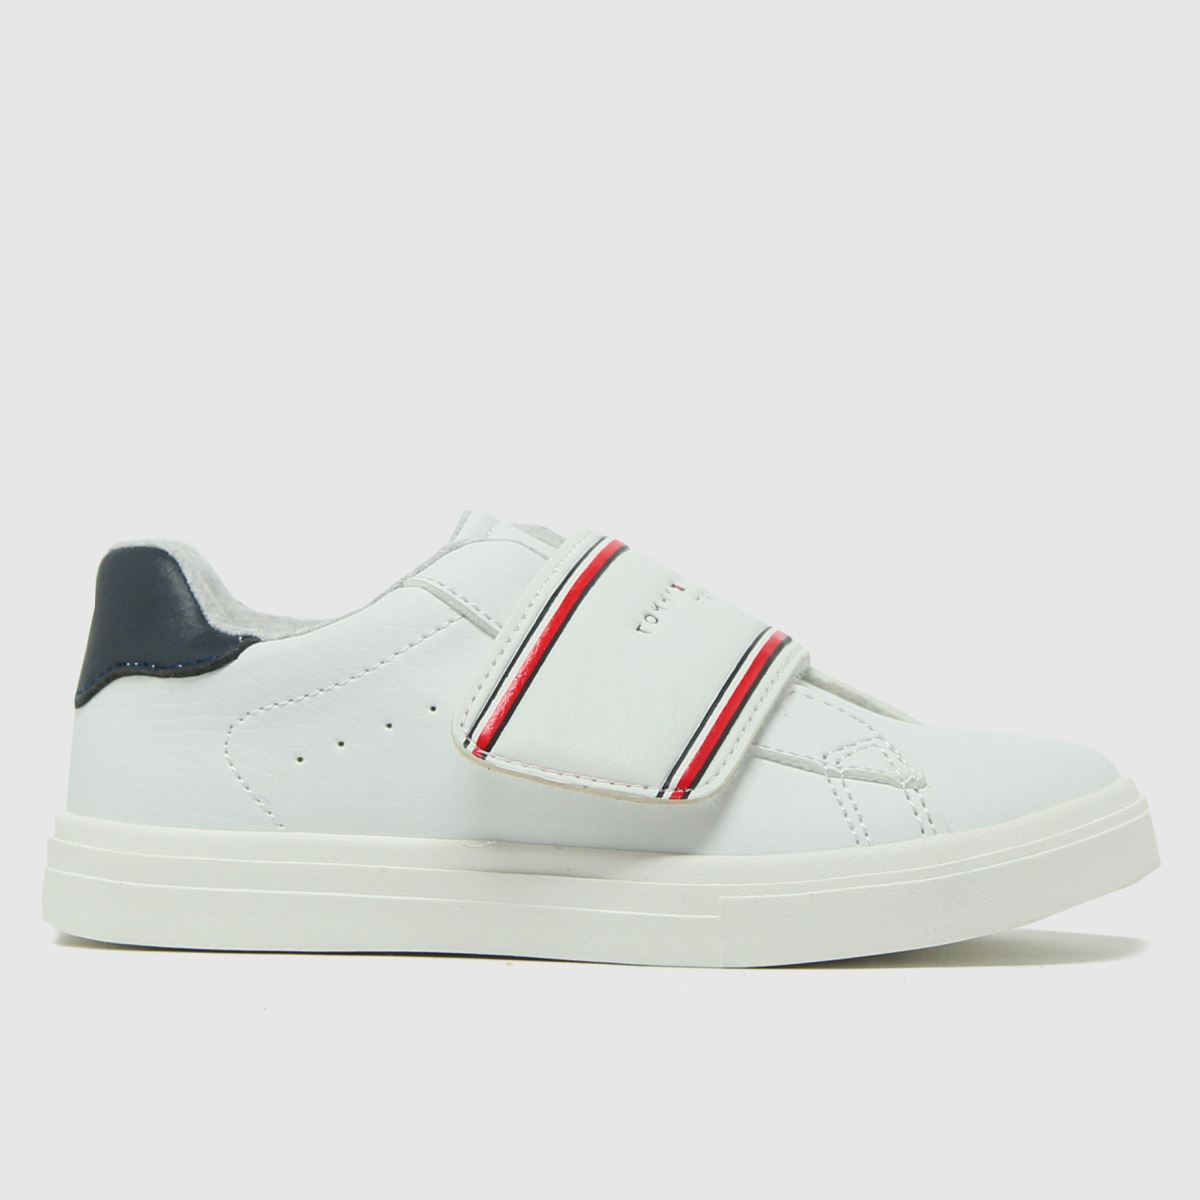 Tommy Hilfiger White & Red Low Cut Velcro Sneaker Tdlr Trainers